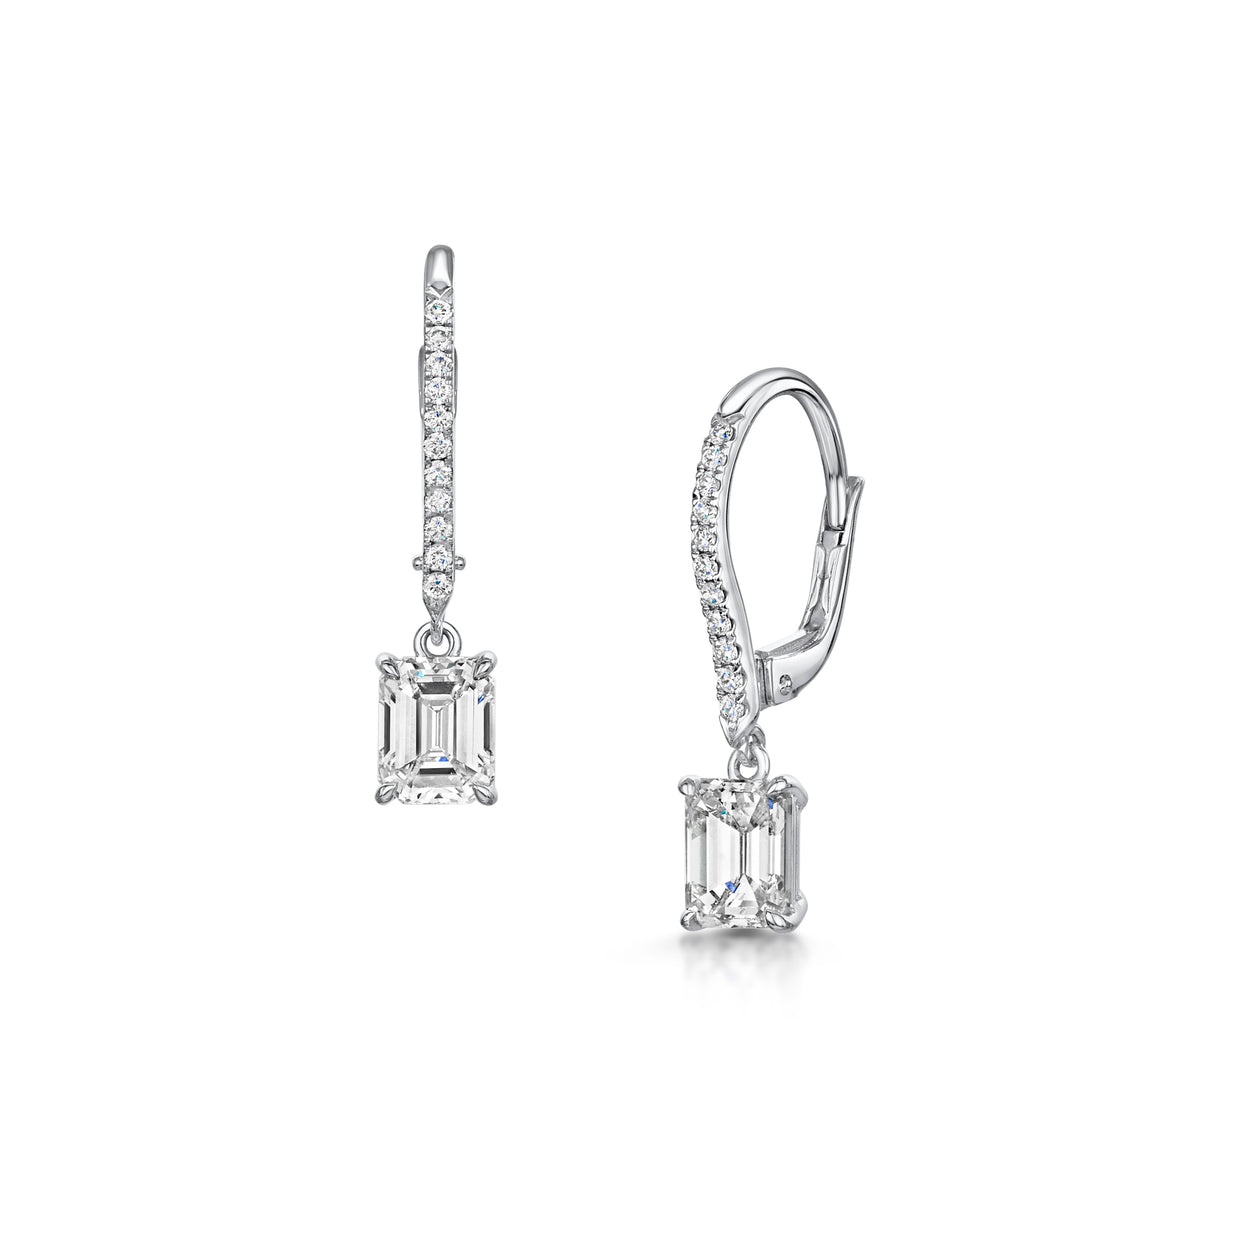 Emerald-Cut Diamond Drop Earrings in 18ct White Gold-Hamilton & Inches